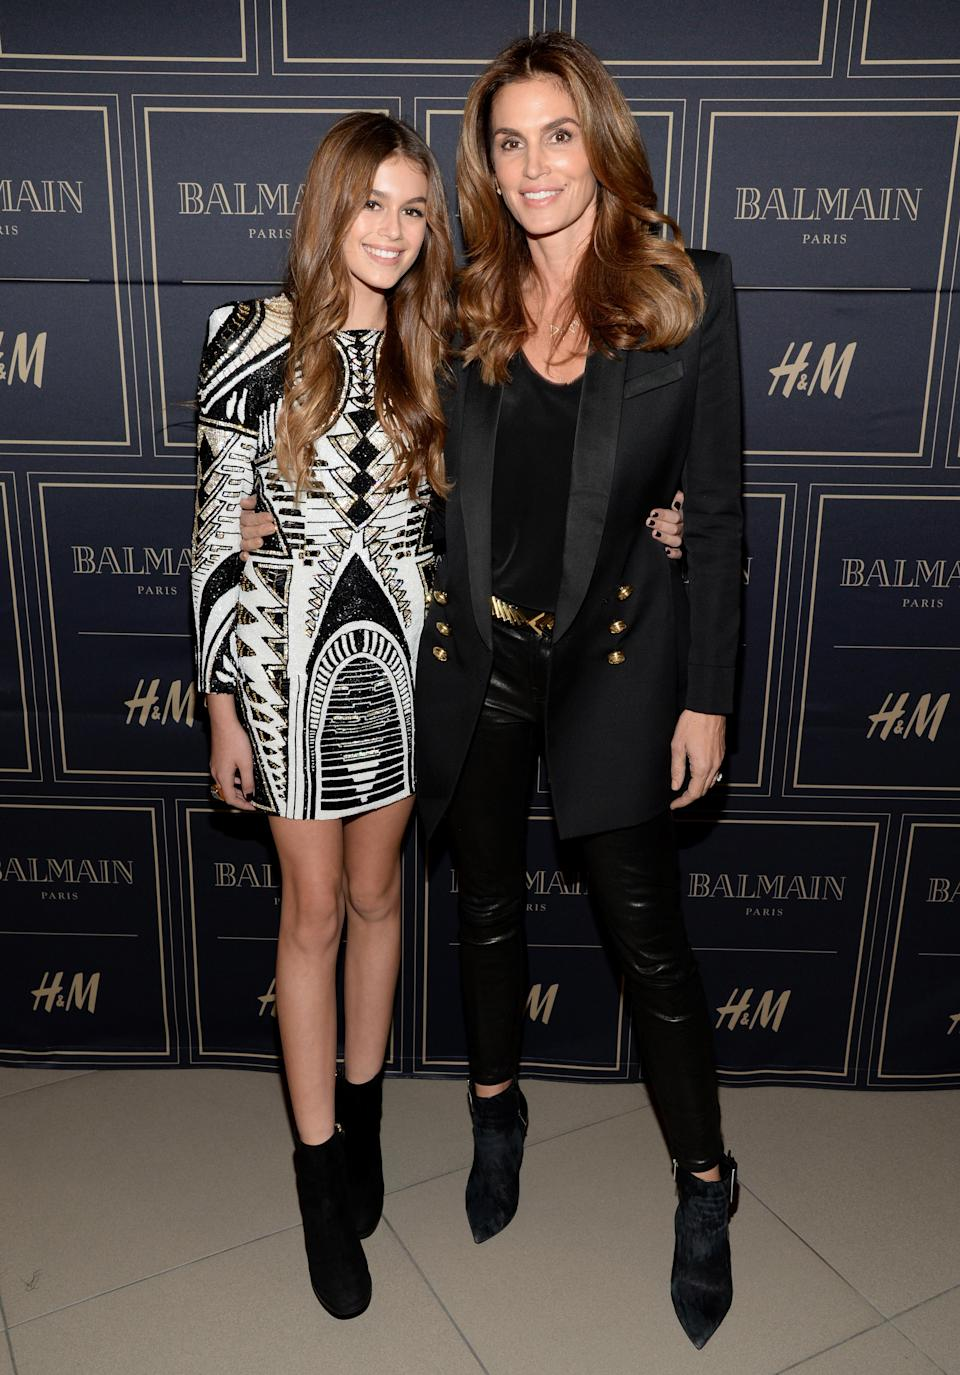 <p>Cindy Crawford might have been one of the original supermodels, but her daughter's fast becoming just as famous. Kaia's only 16-years-old and has already walked for the likes of Chanel, Saint Laurent and Valentino. Watch this space – this teen's going places. <em>[Photo: Getty]</em> </p>